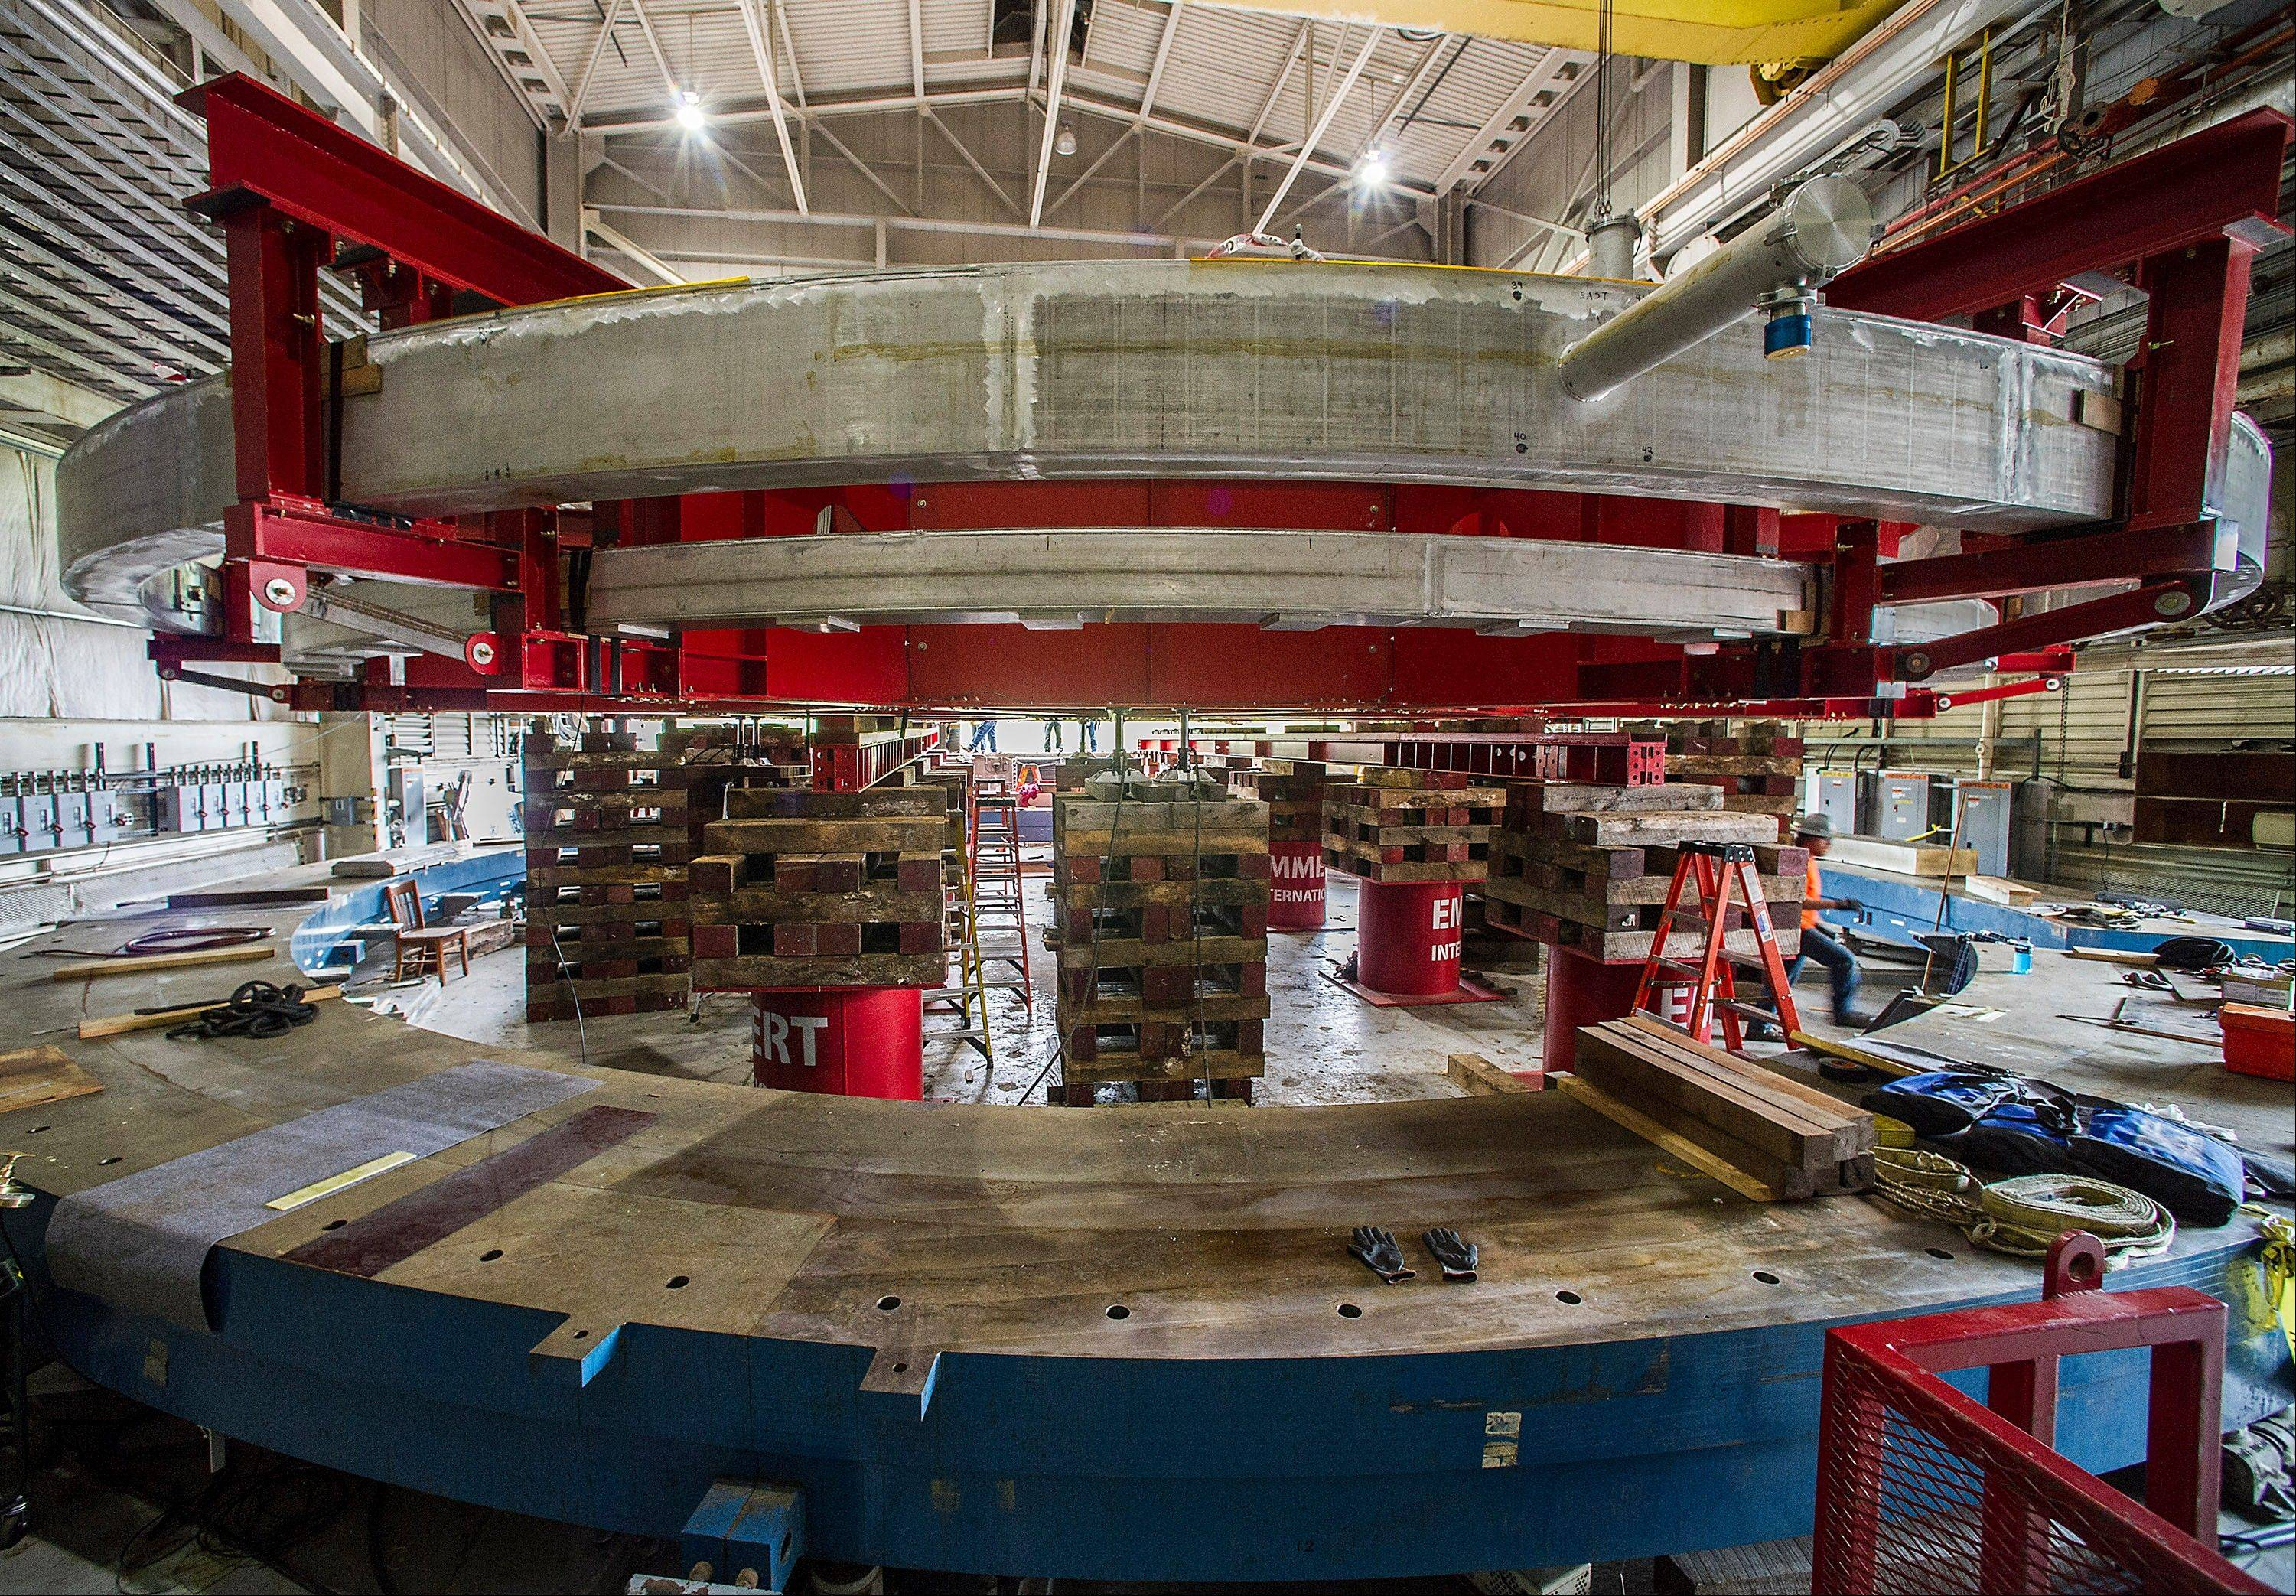 A red stabilizing apparatus carrying a 50-foot-wide electromagnet storage ring is seen at Brookhaven National Laboratory in Upton, N.Y., on eastern Long Island. The ring, which will capture subatomic particles that live only 2.2 millionths of a second, will be transported in one piece, and moved flat, to its new home at the U.S. Department of Energy's Fermi National Accelerator Laboratory in Batavia.